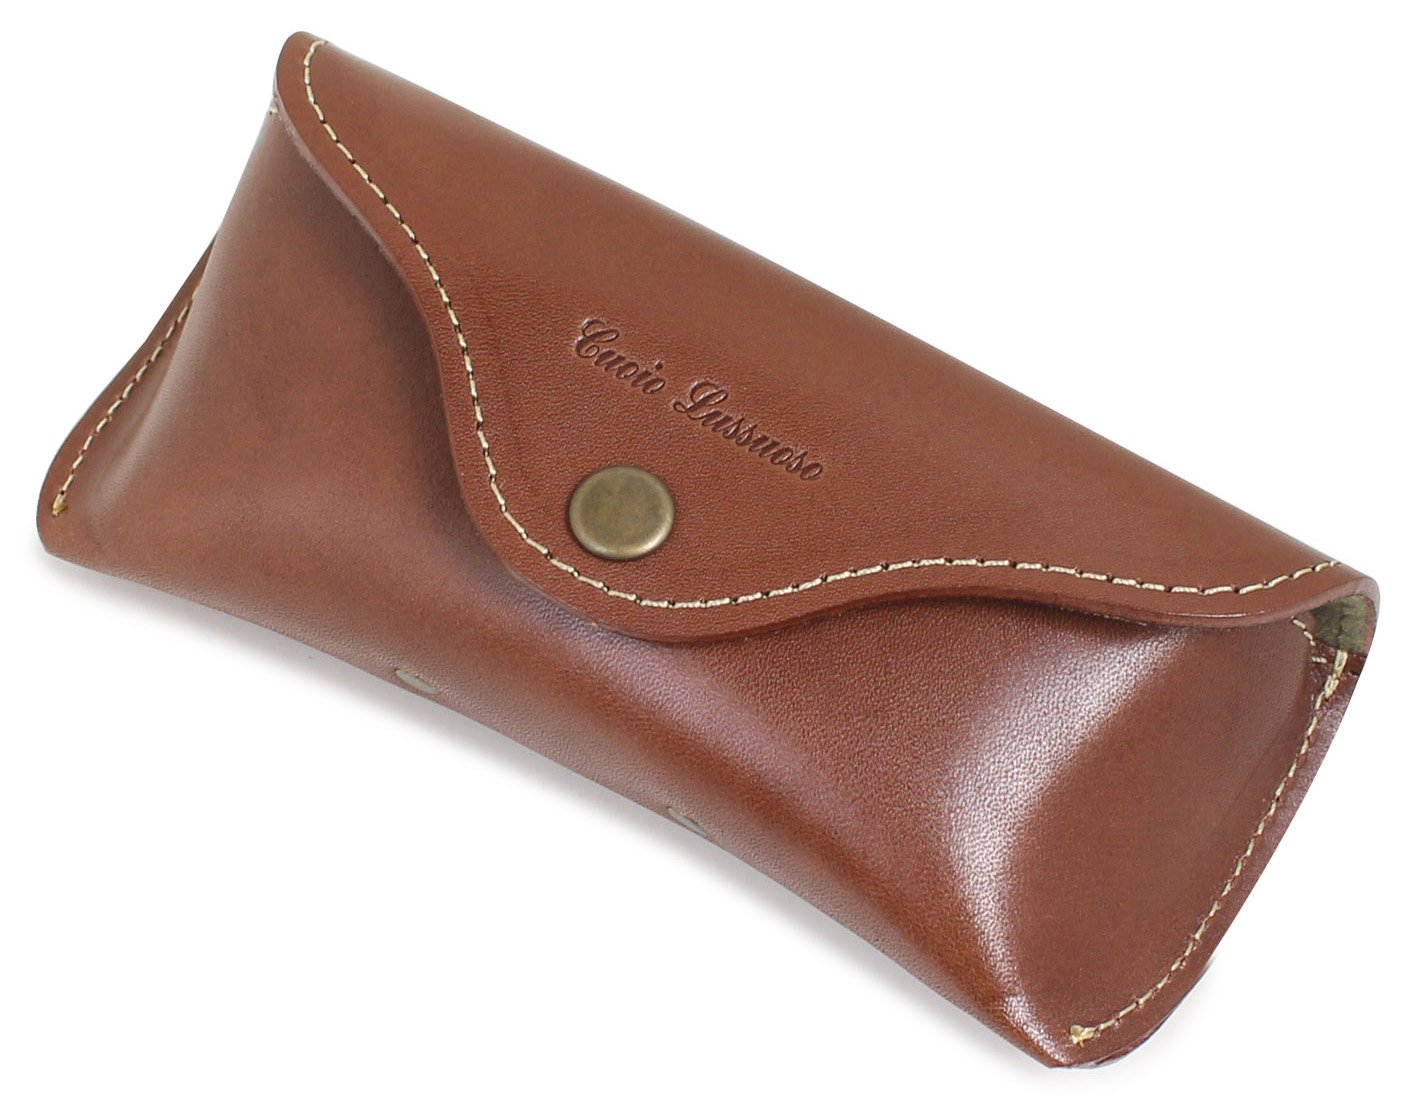 TCcase Co.,Ltd. Buttero Leather Hard Eyeglass Case With Belt Loop for Putting on your Pants - Brown by TCcase Co.,Ltd.